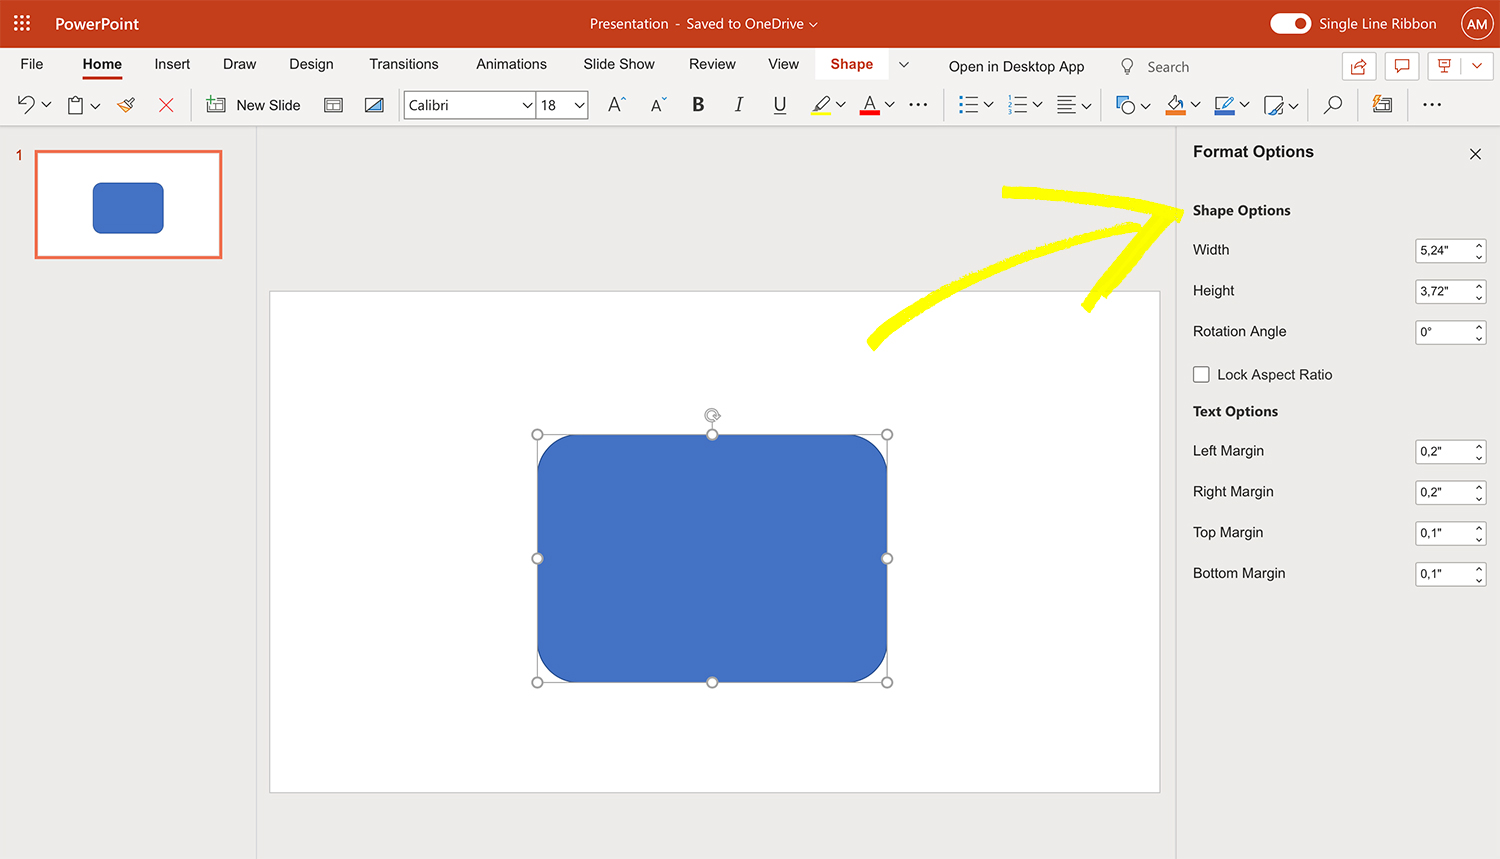 How to resize shape in PowerPoint